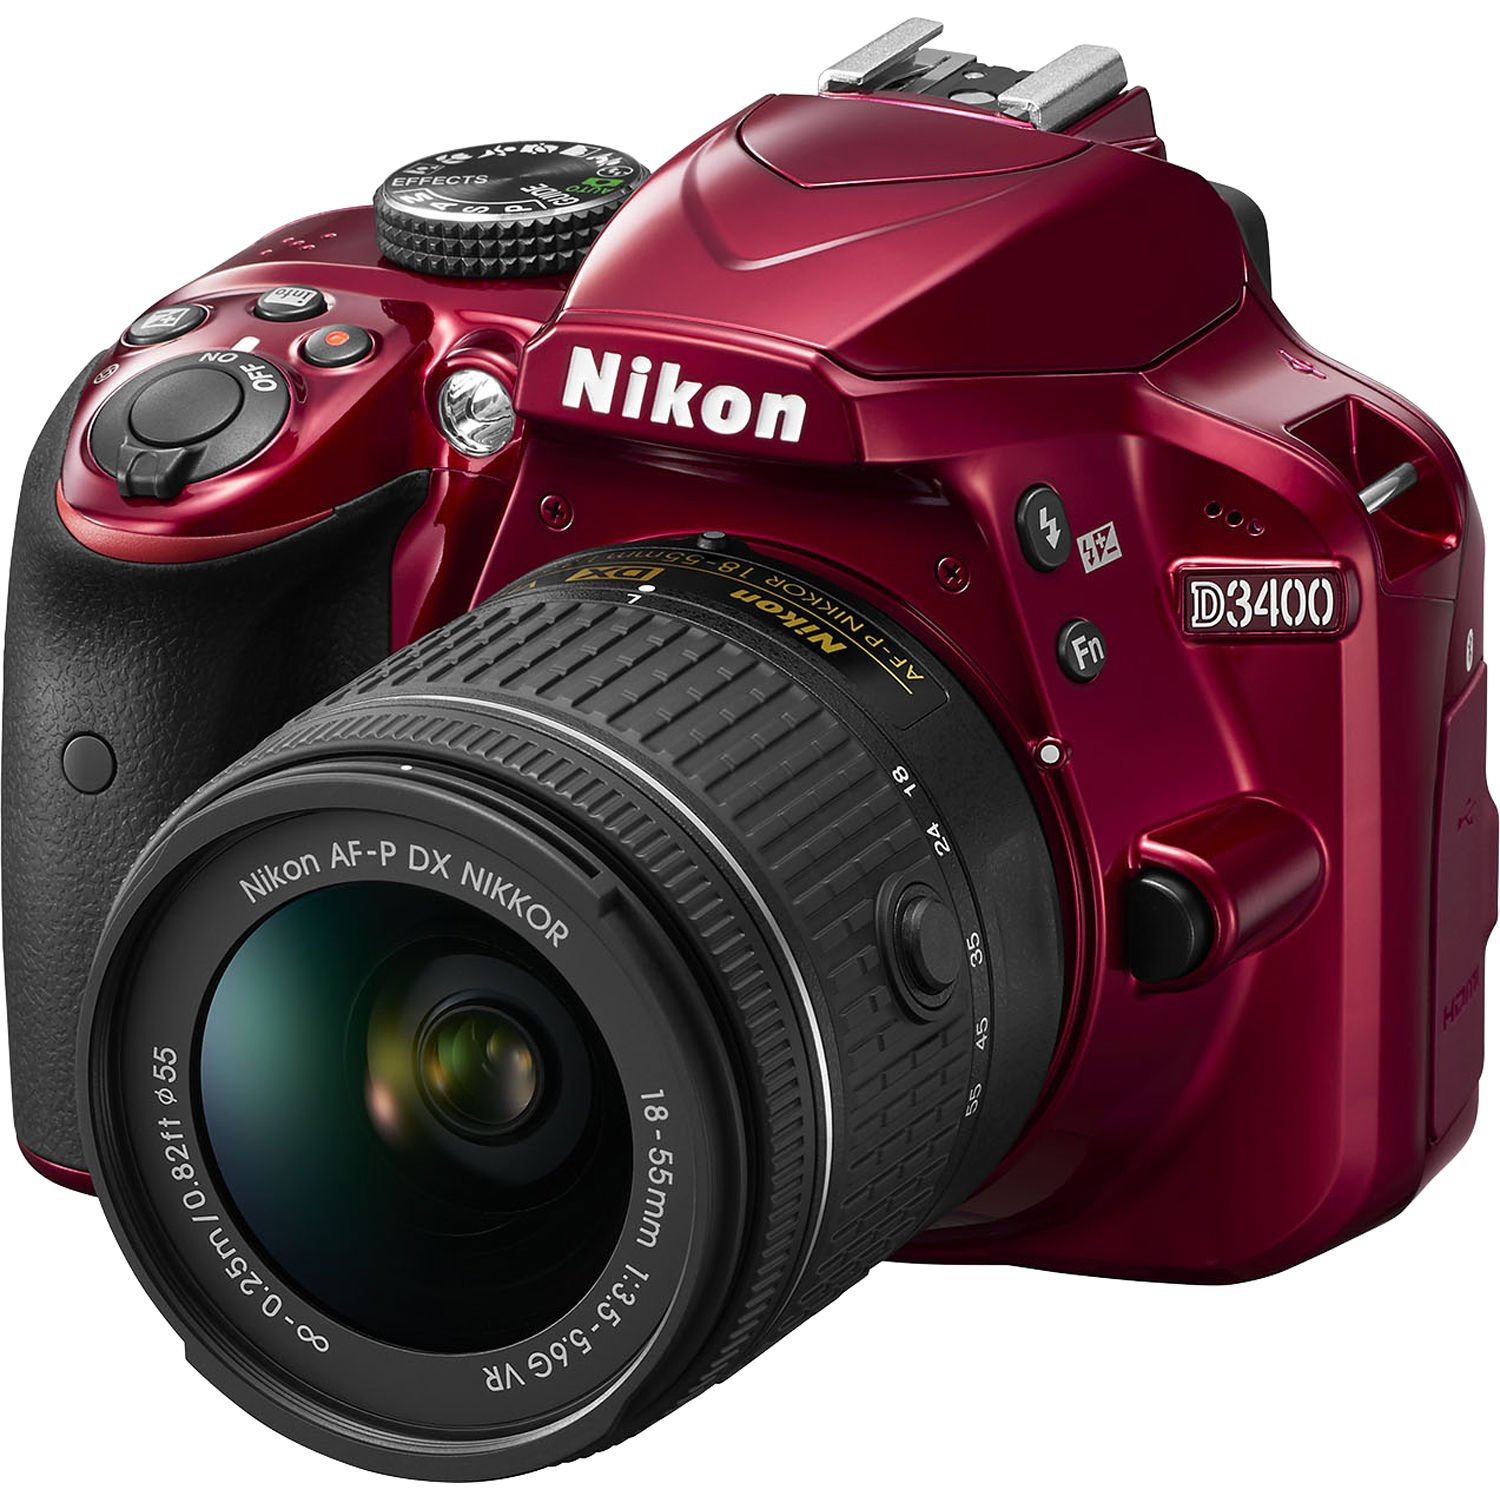 Nikon D3400 DSLR Camera w/ AF-P DX NIKKOR 18-55mm f/3.5-5.6G VR Lens - Red (Certified Refurbished)